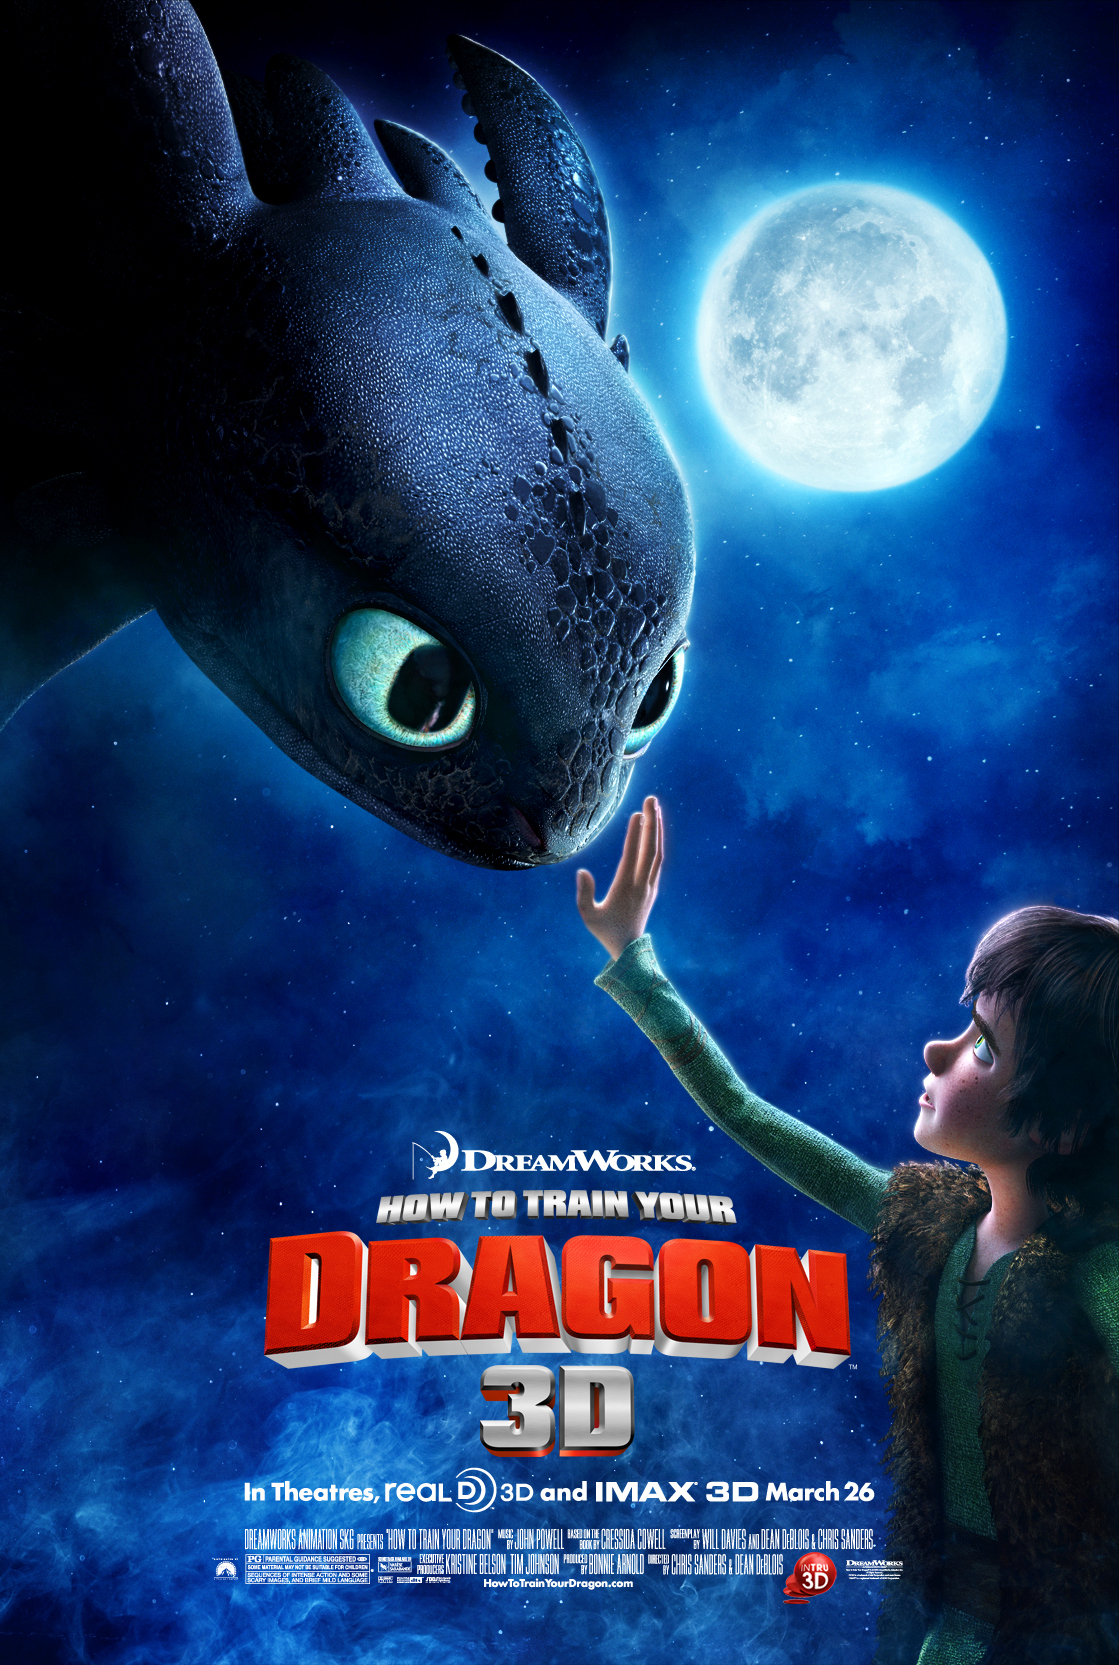 How To Train Your Dragon 2010 Imdb